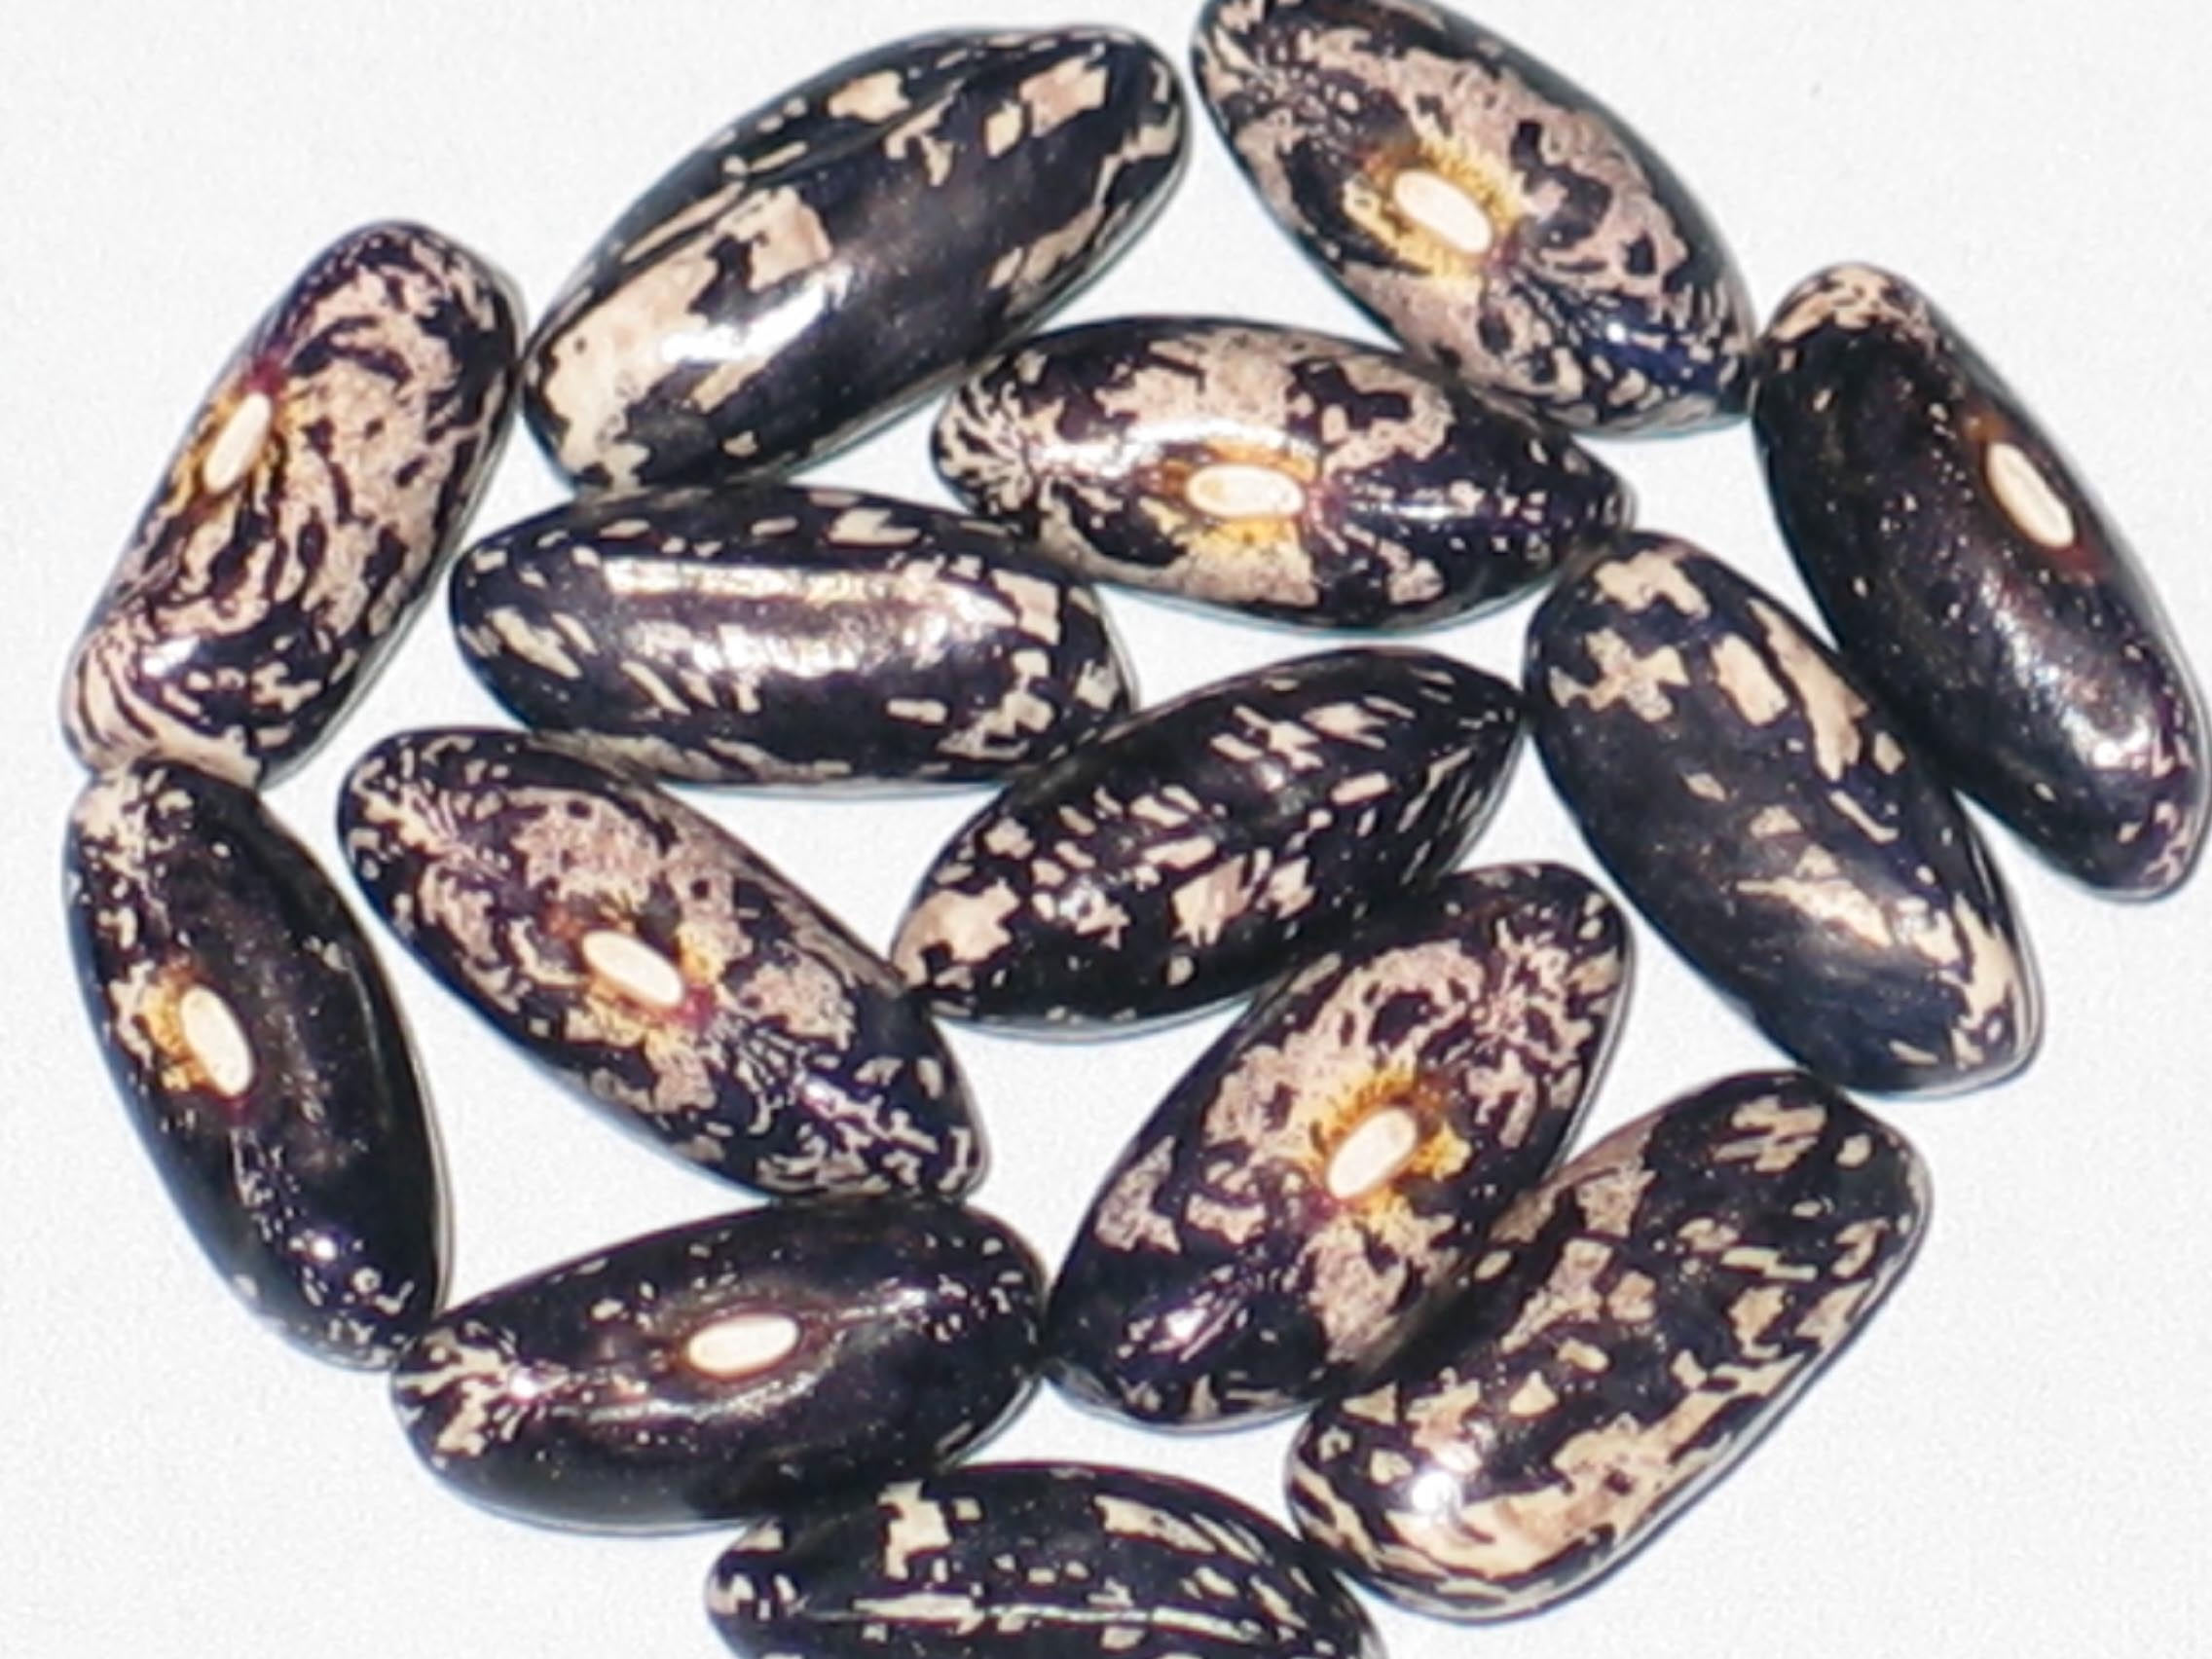 image of Idaho Refugee beans